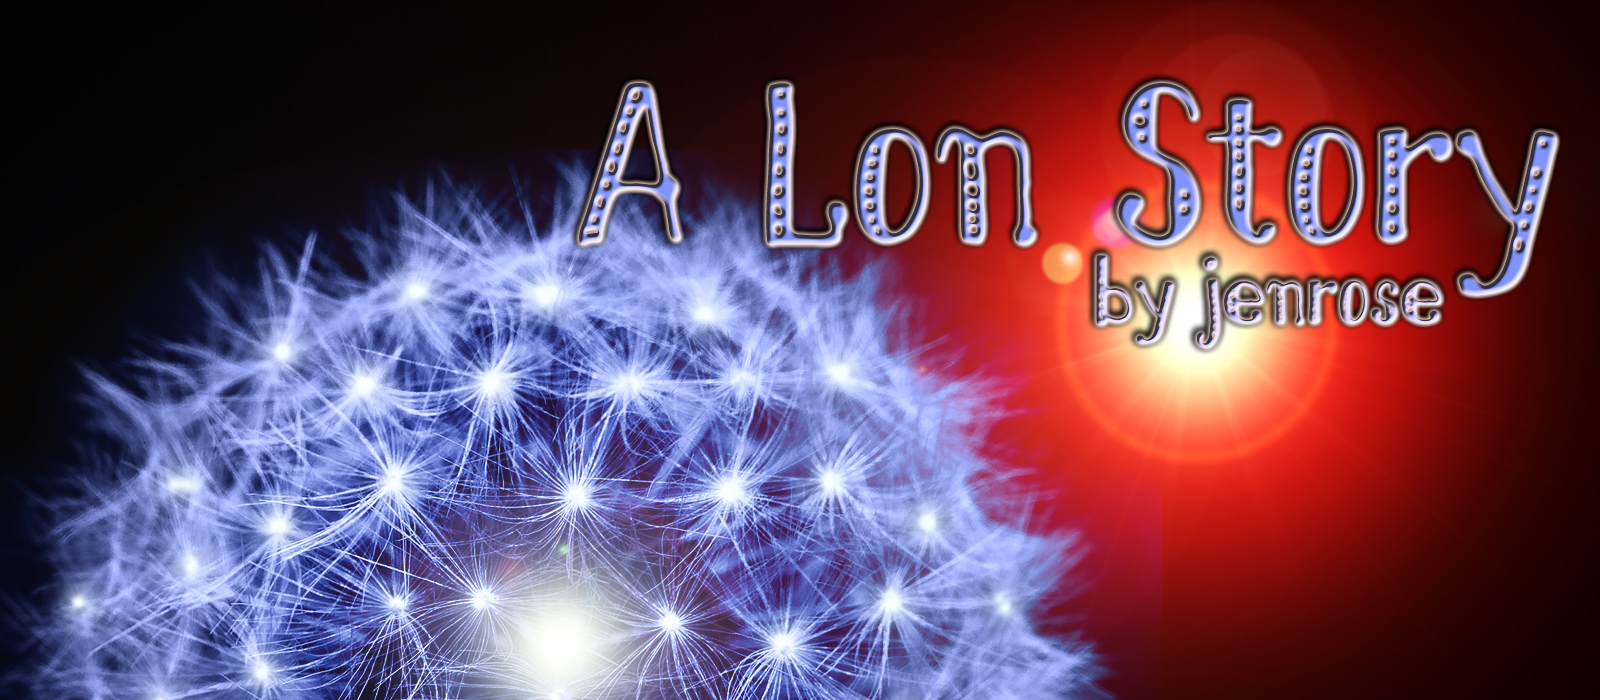 A Lon Story by Jenrose site cover image with a glassy dandelion seed head that resembles a set of wisp probes ready for launch. In the background, a reddish yellow star.